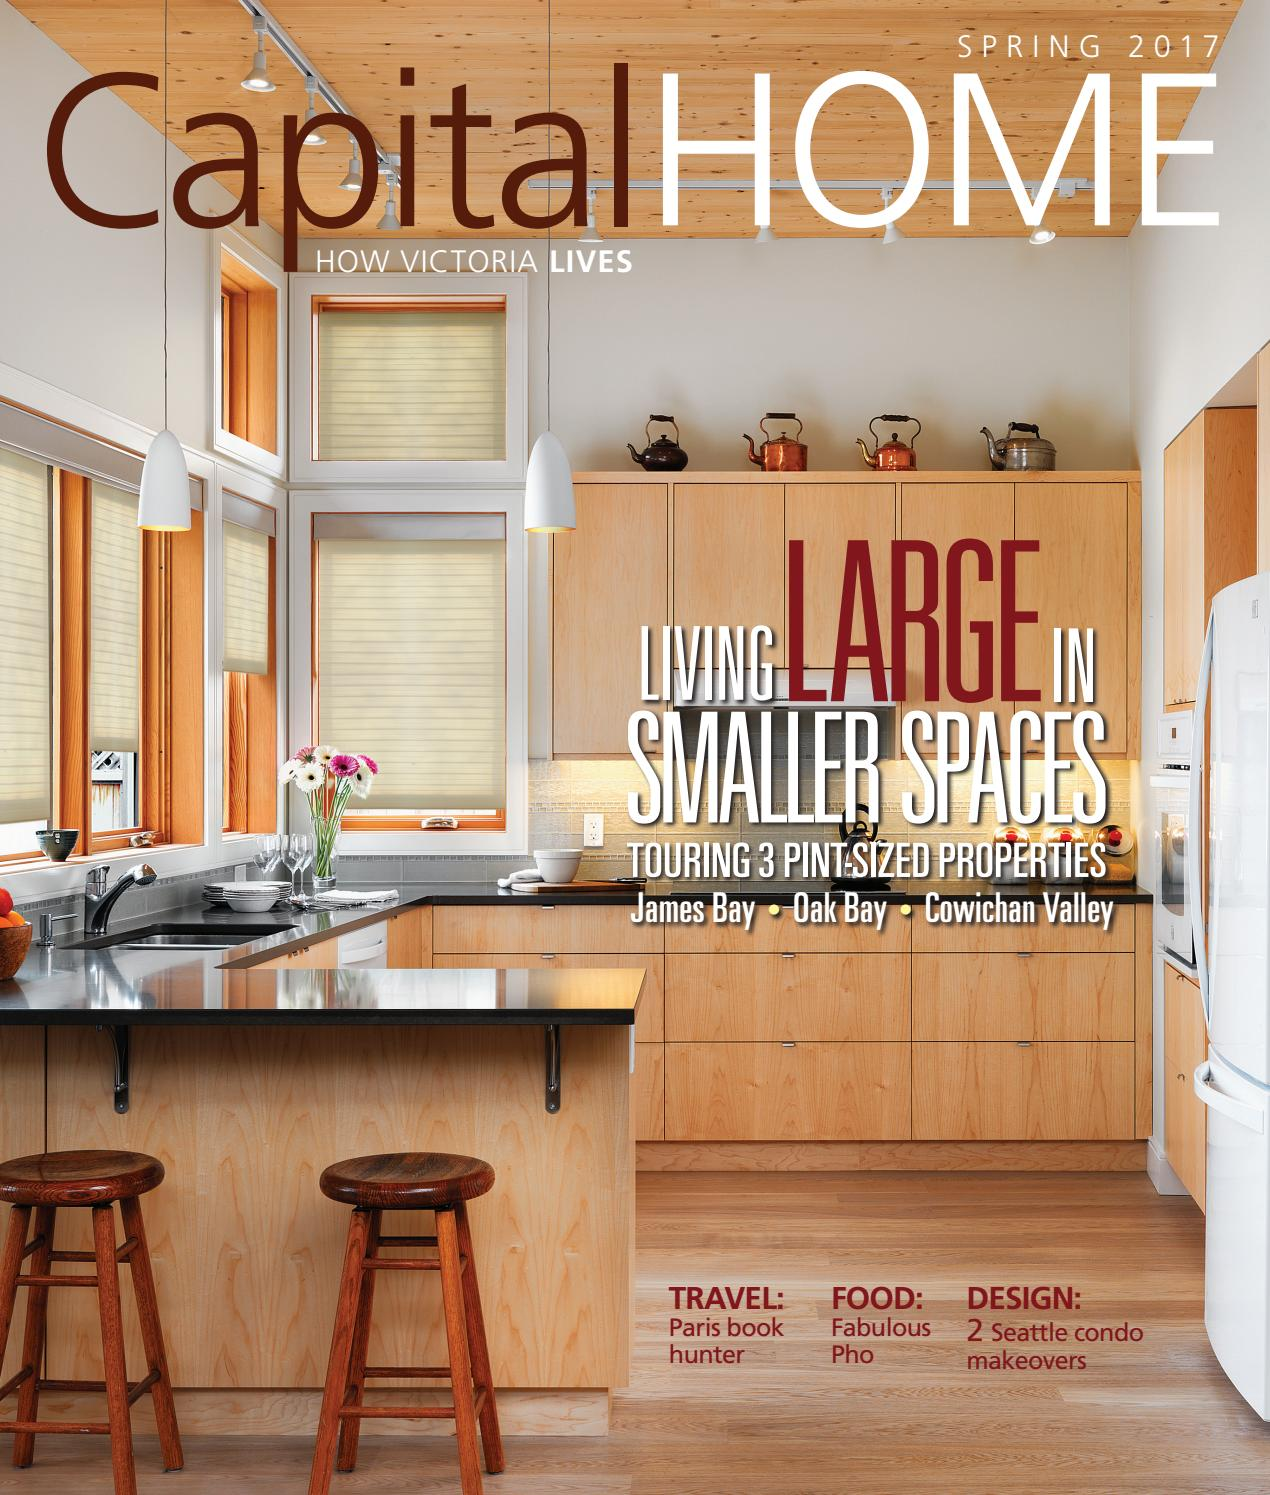 Capital Home Spring 2017 by Times Colonist - issuu